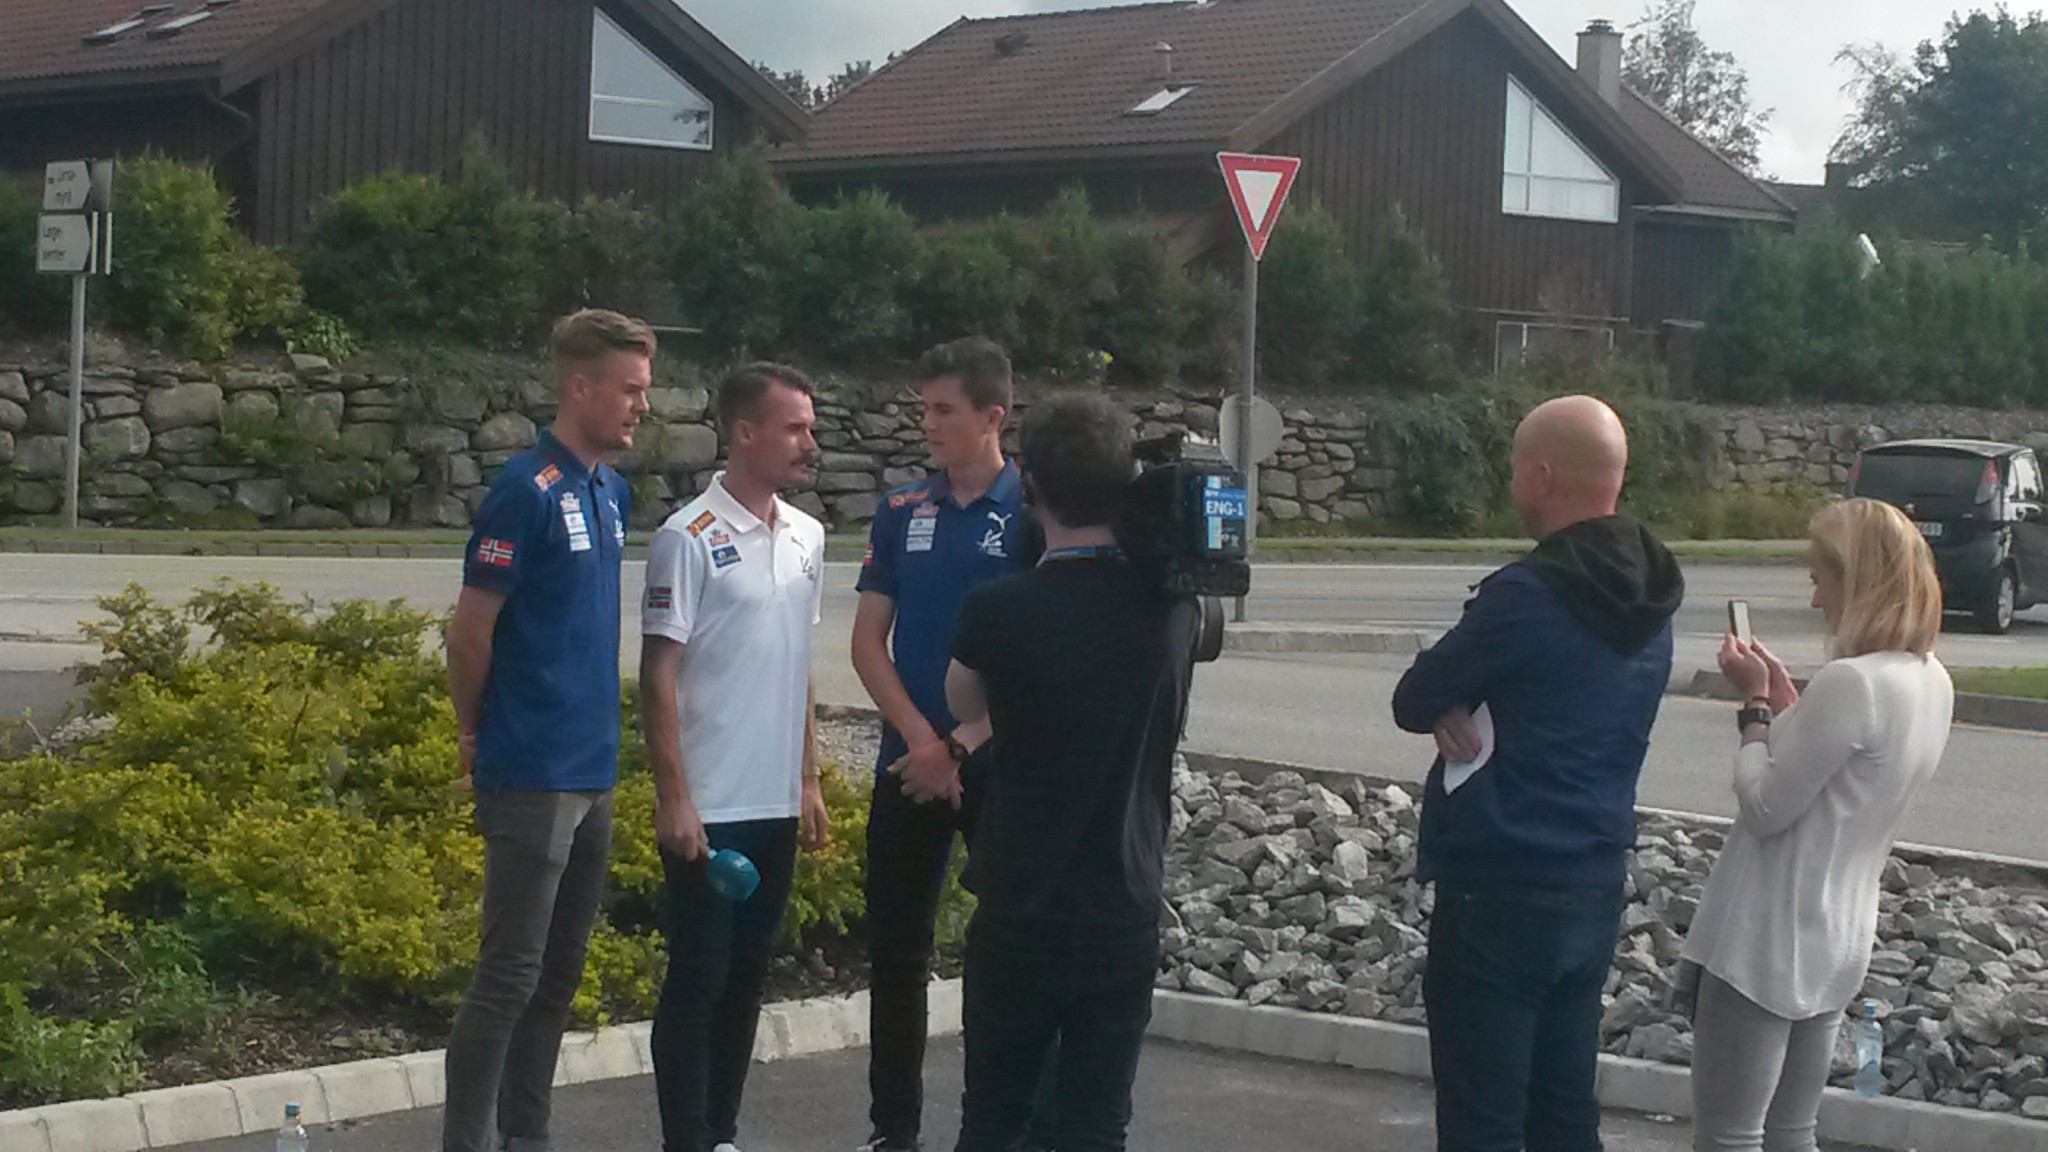 The Brothers Ingebrigtsen - from left, Filip, Henrik and Jakob - prepare to do their thing for Norwegian TV ©ITG